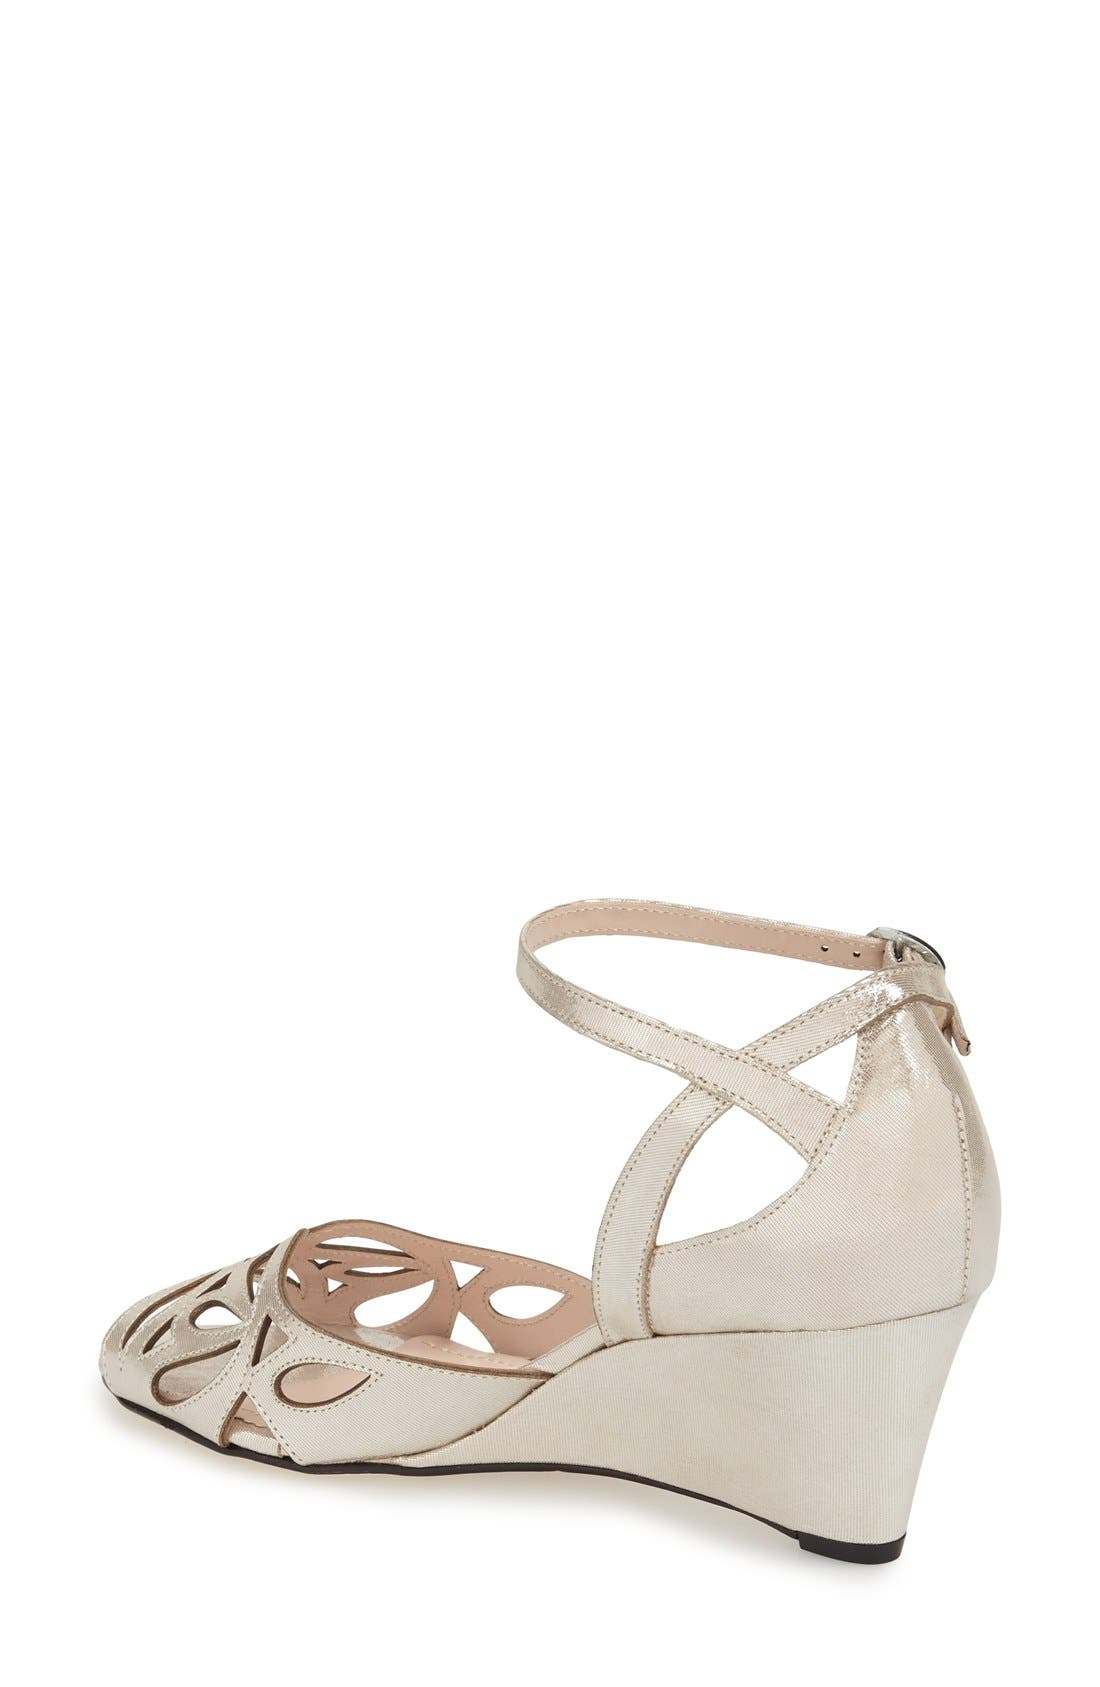 Alternate Image 2  - Klub Nico 'Kismet' Wedge Sandal (Women)